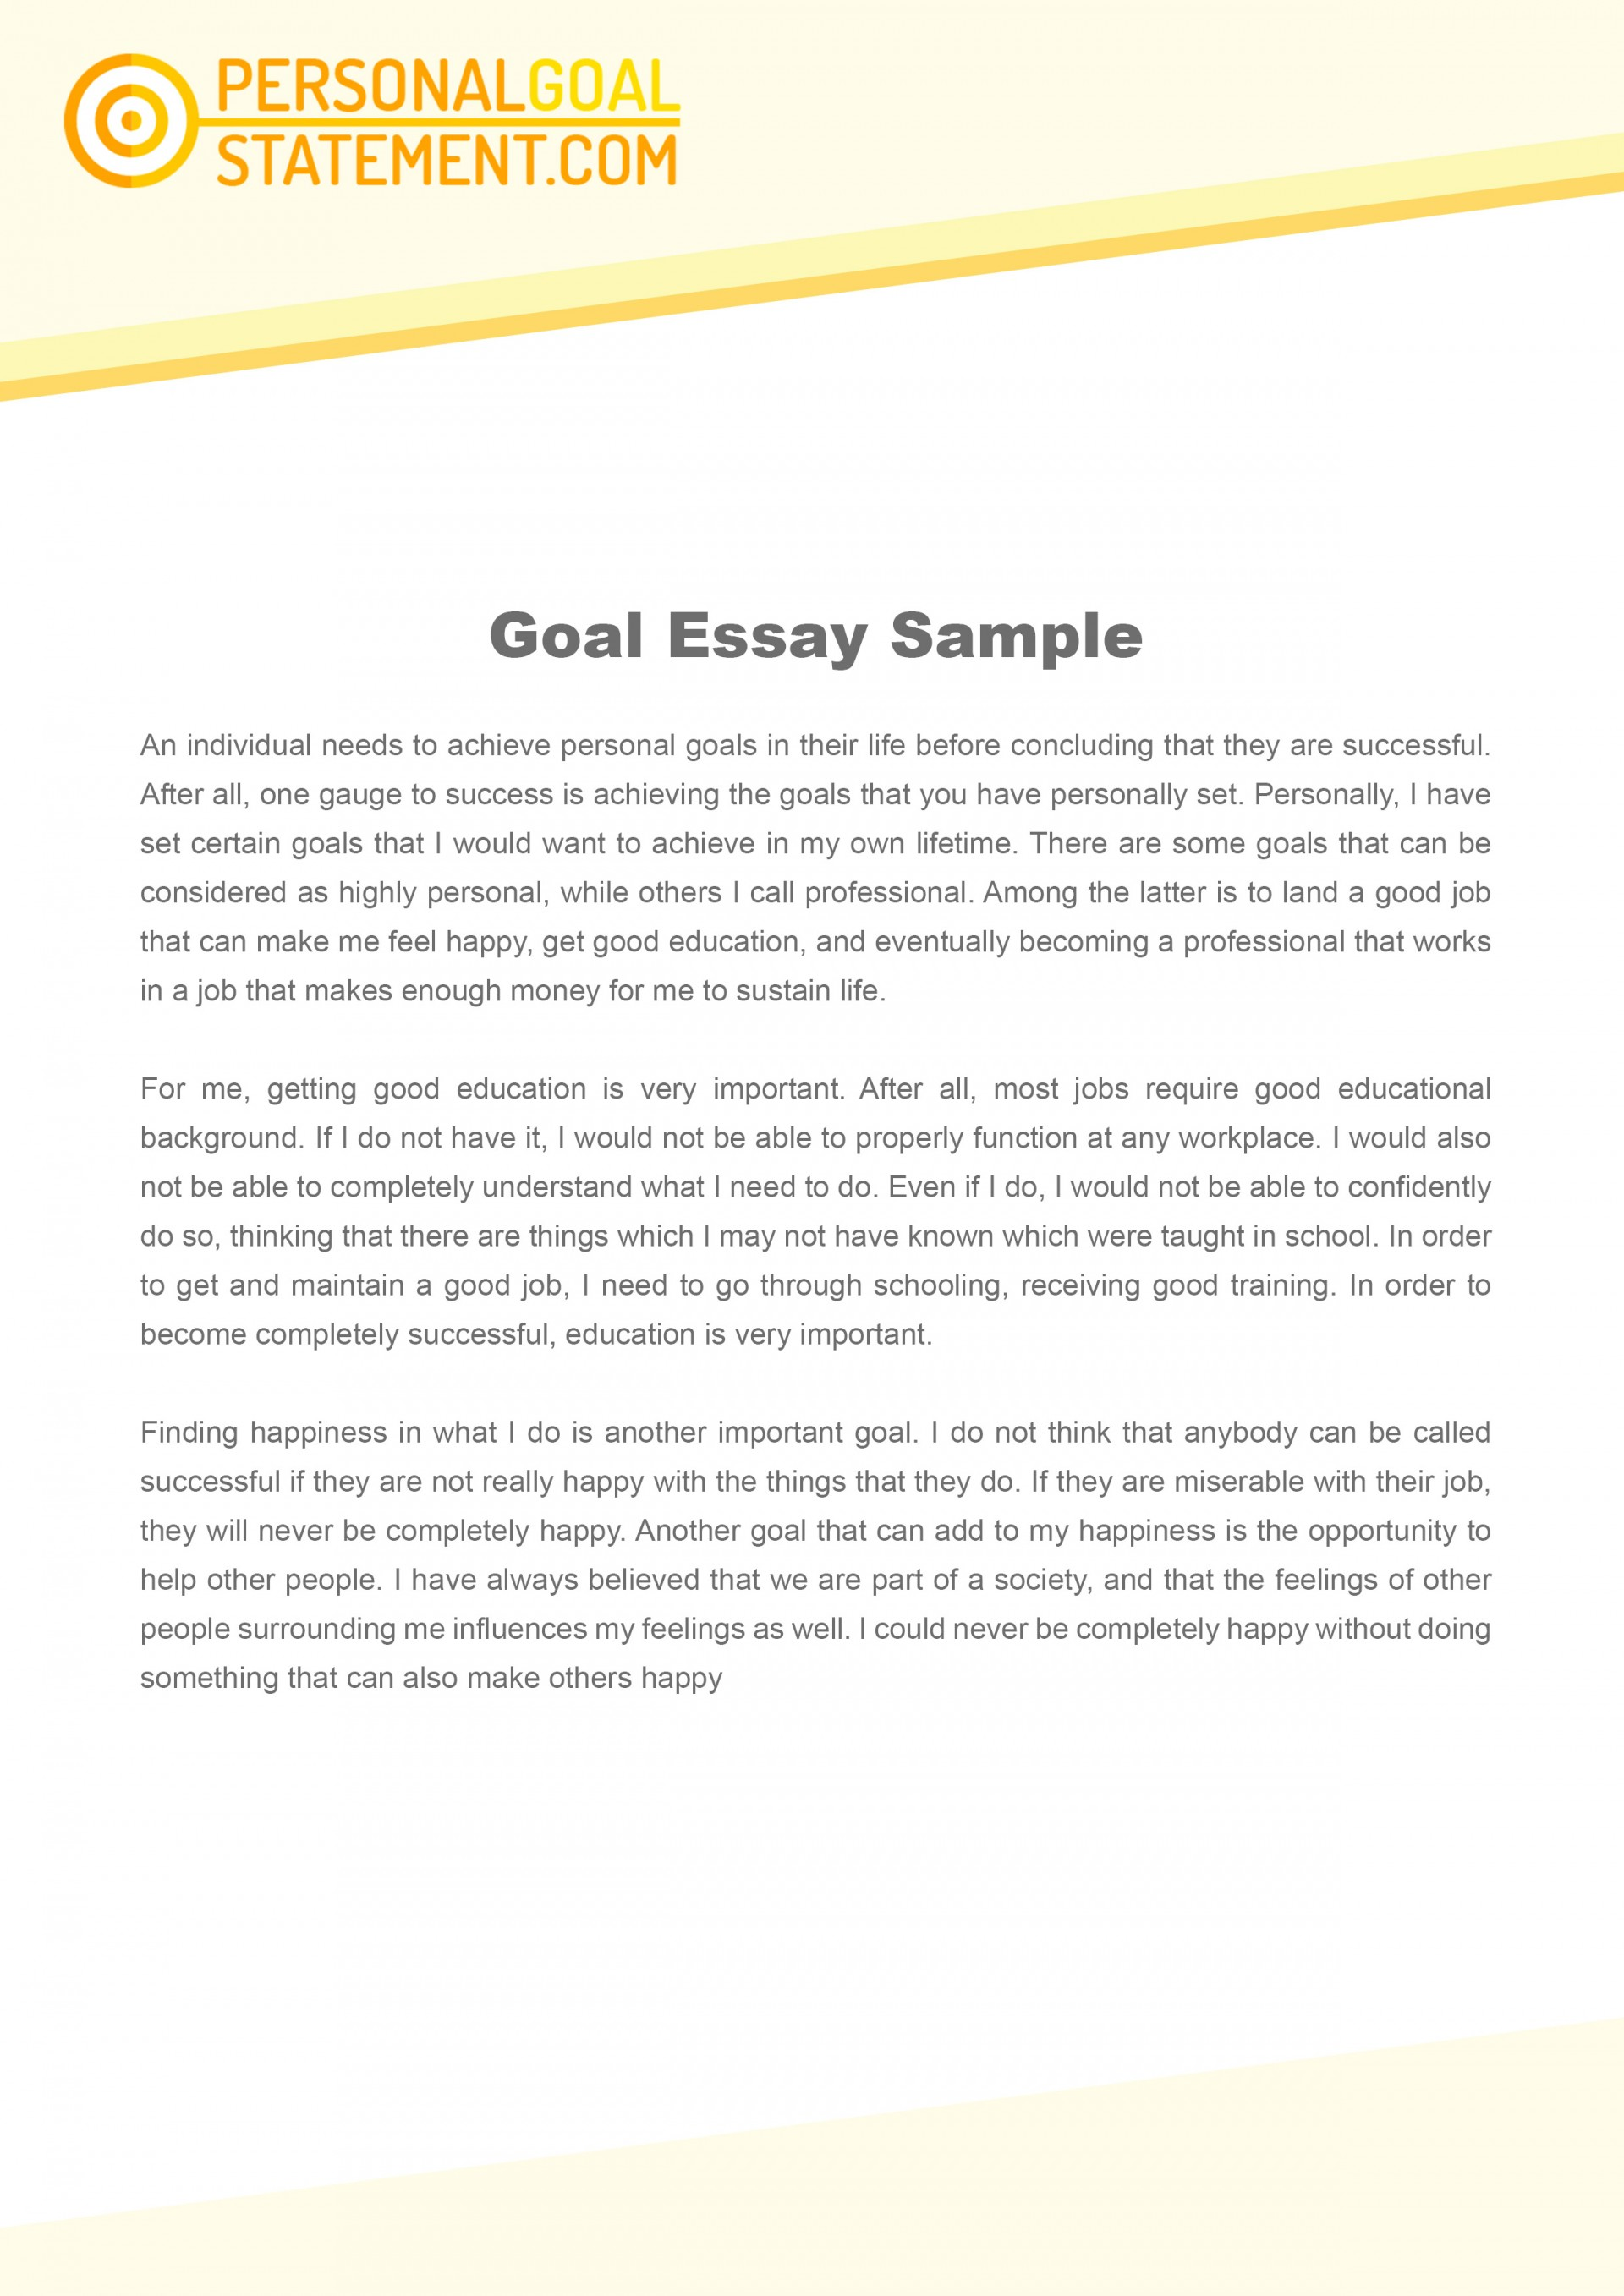 007 Academic Goals Essay Example Career Goal Uniforms Debate Personal Examples L Dreaded For College Students Scholarship Future High School 1920